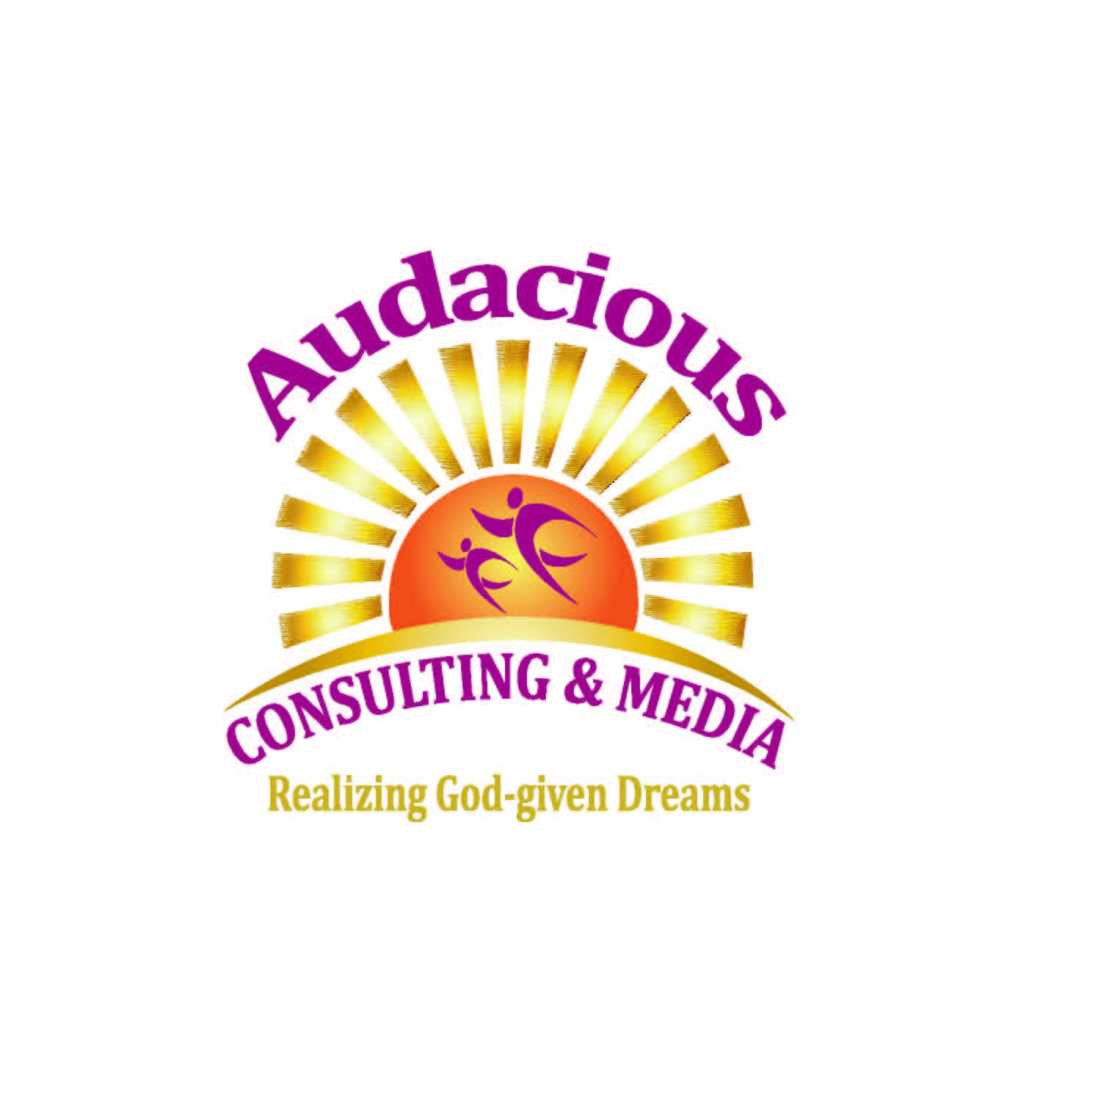 Audacious Consulting & Media Logo